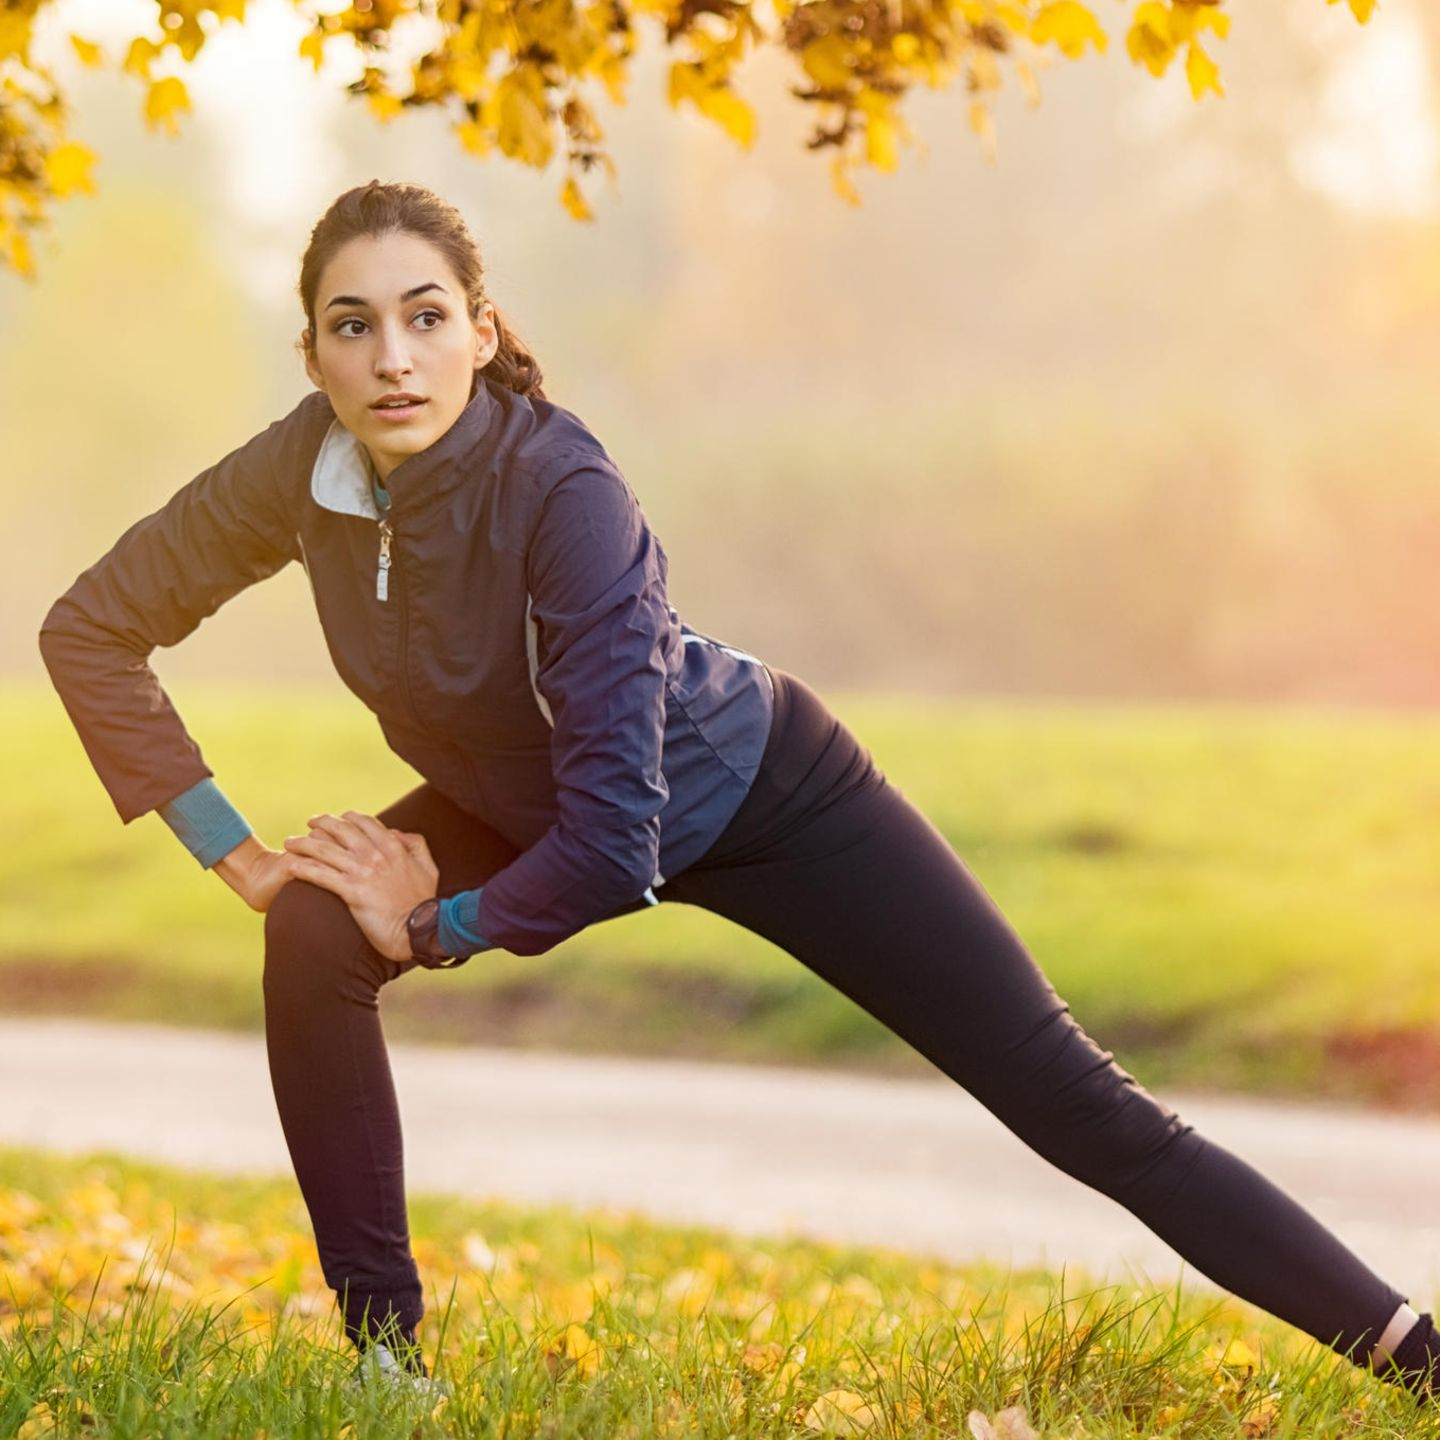 Healthy living: woman stretches in autumn park